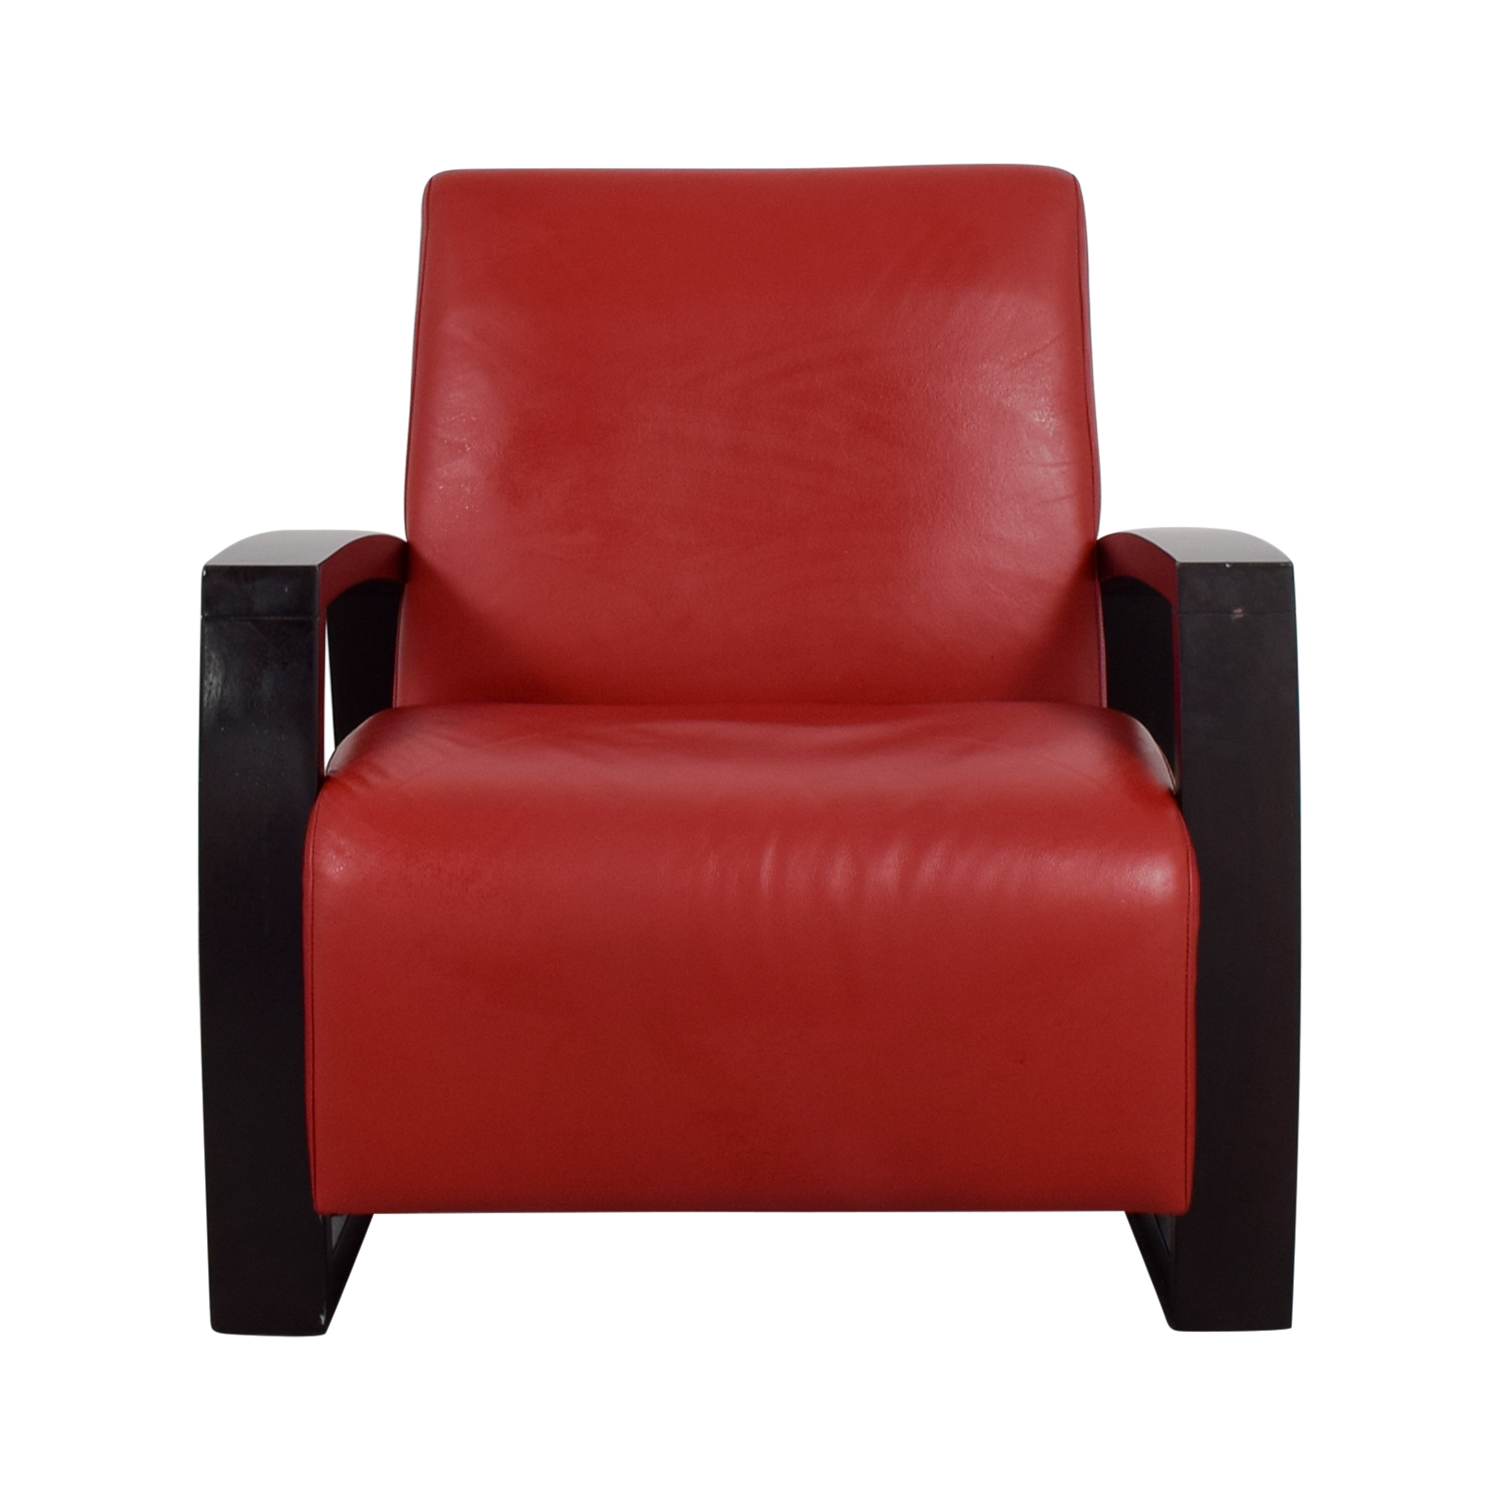 Cantoni Cantoni Red Leather Accent Chair ...